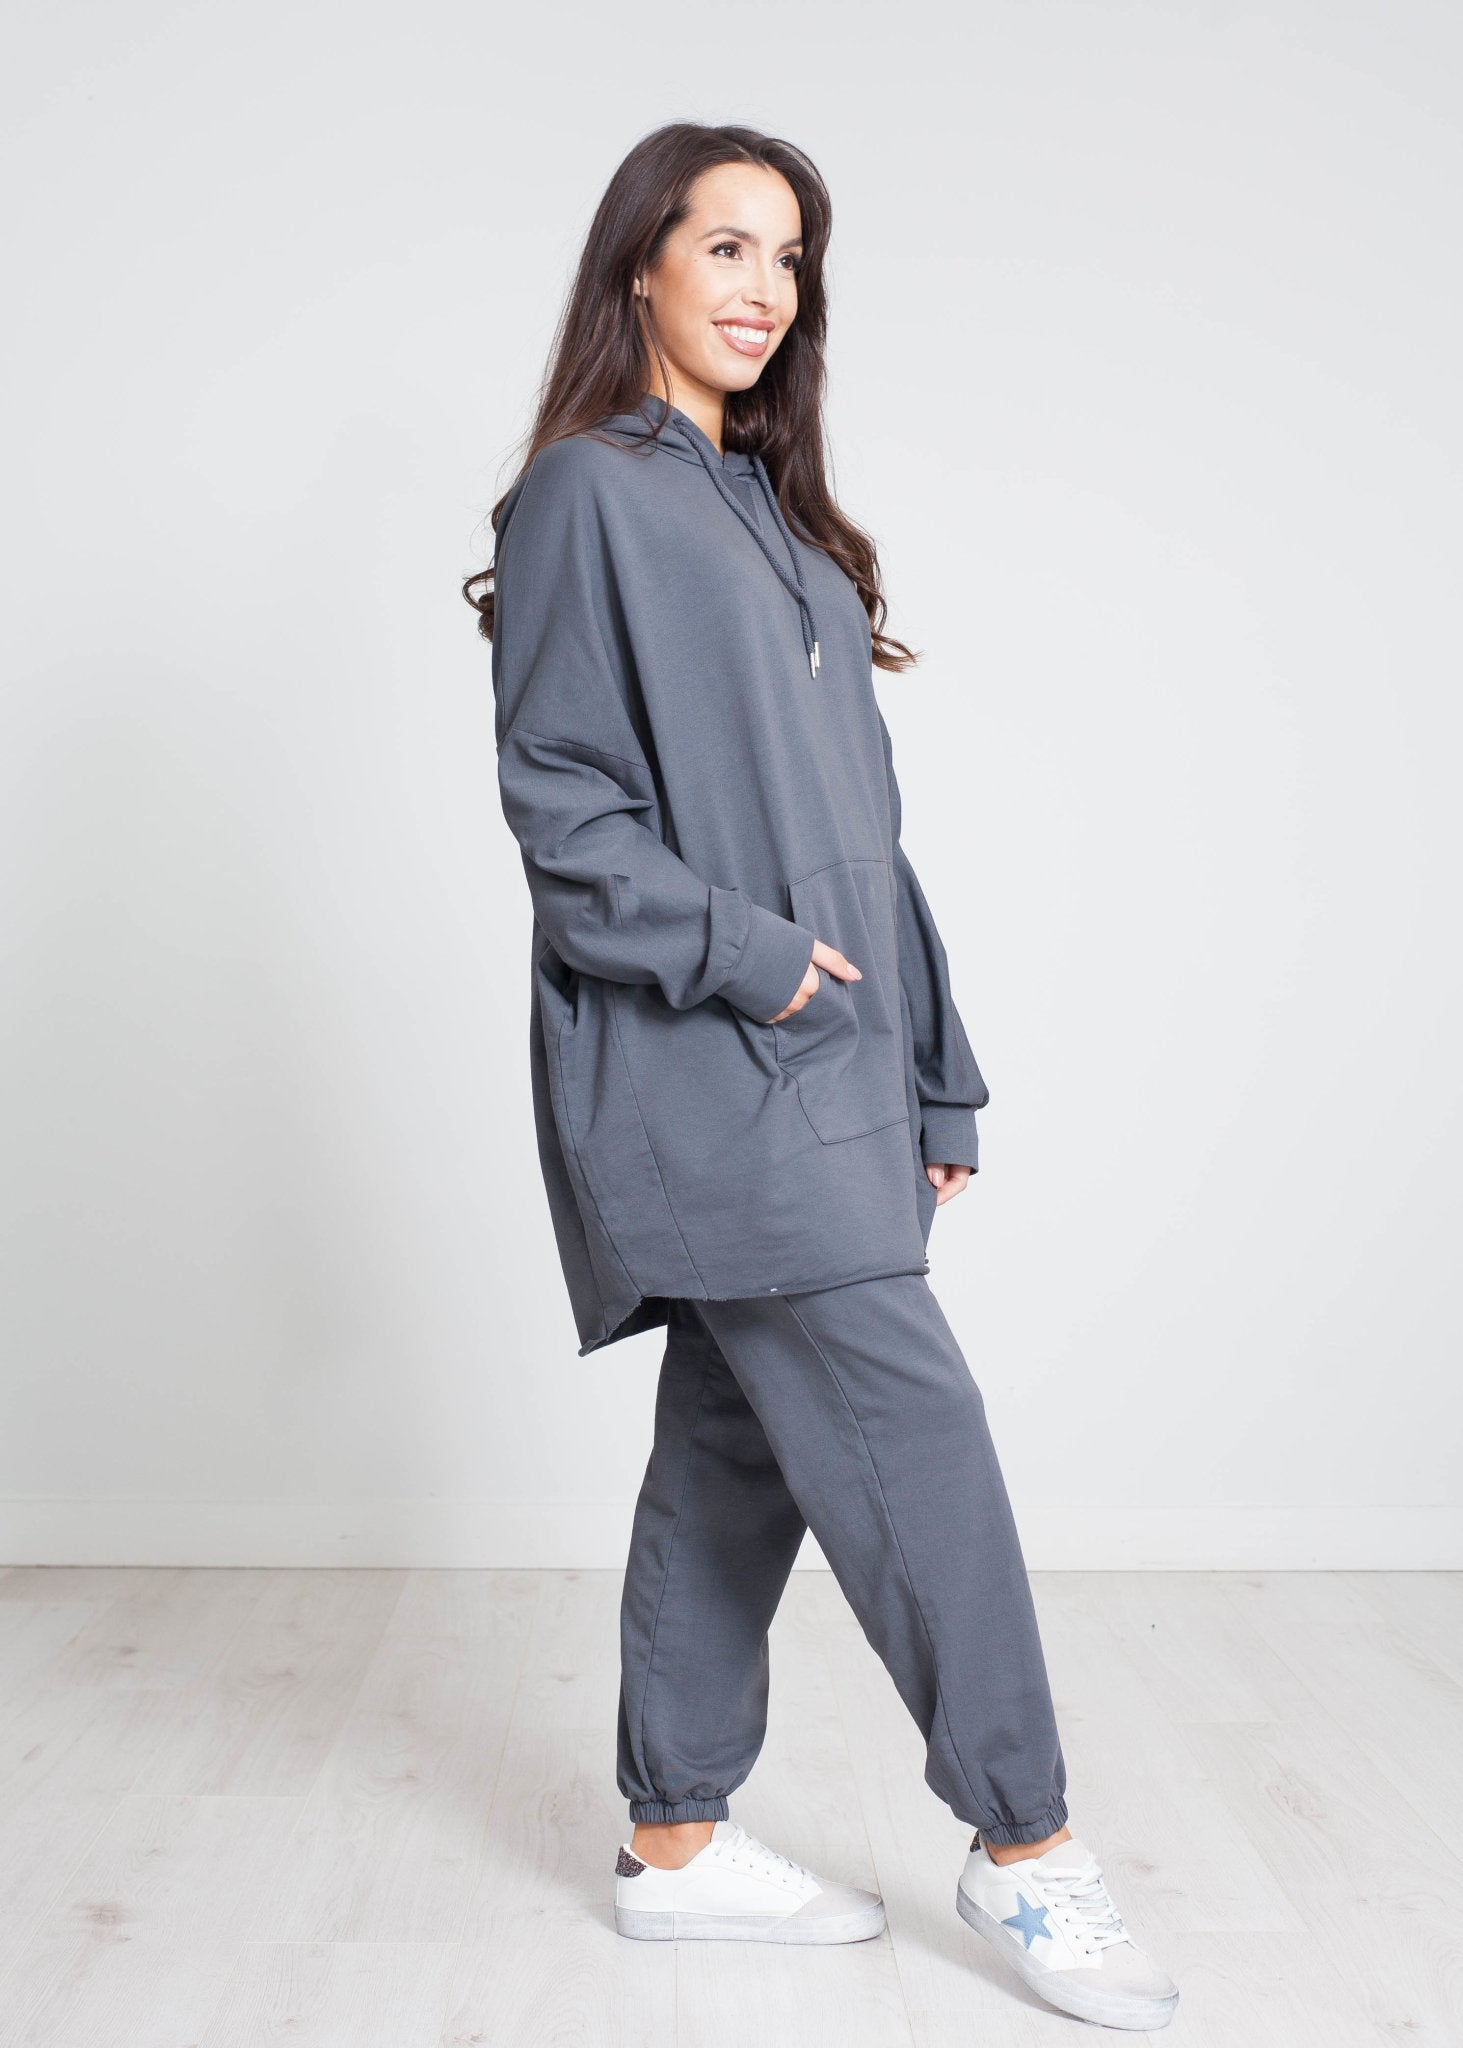 Jayme Oversized Lounge Set In Charcoal - The Walk in Wardrobe